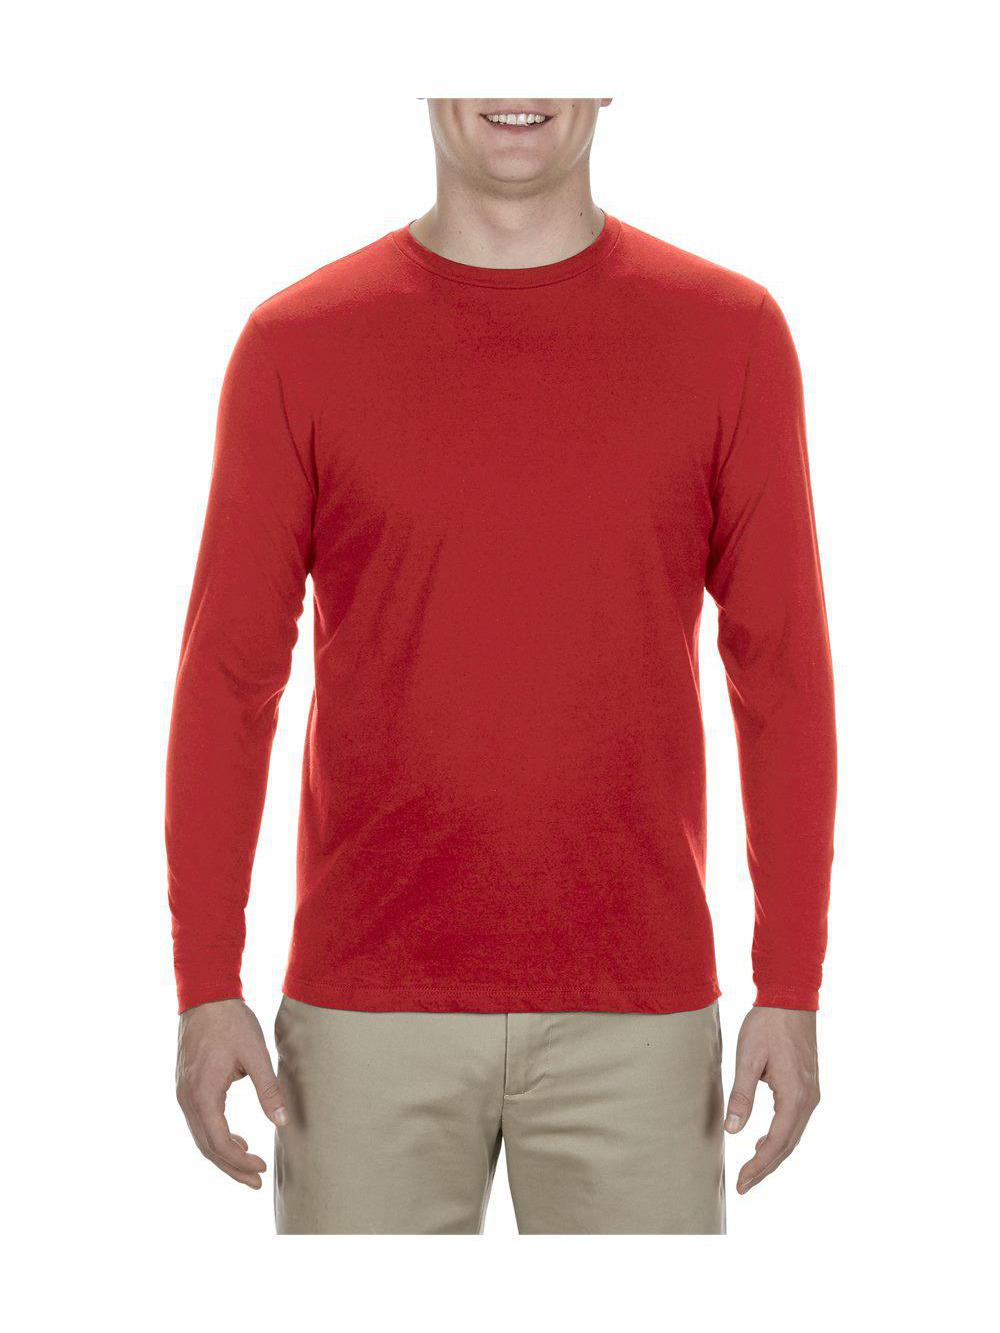 ALSTYLE-Ultimate-Long-Sleeve-T-Shirt-5304 thumbnail 16